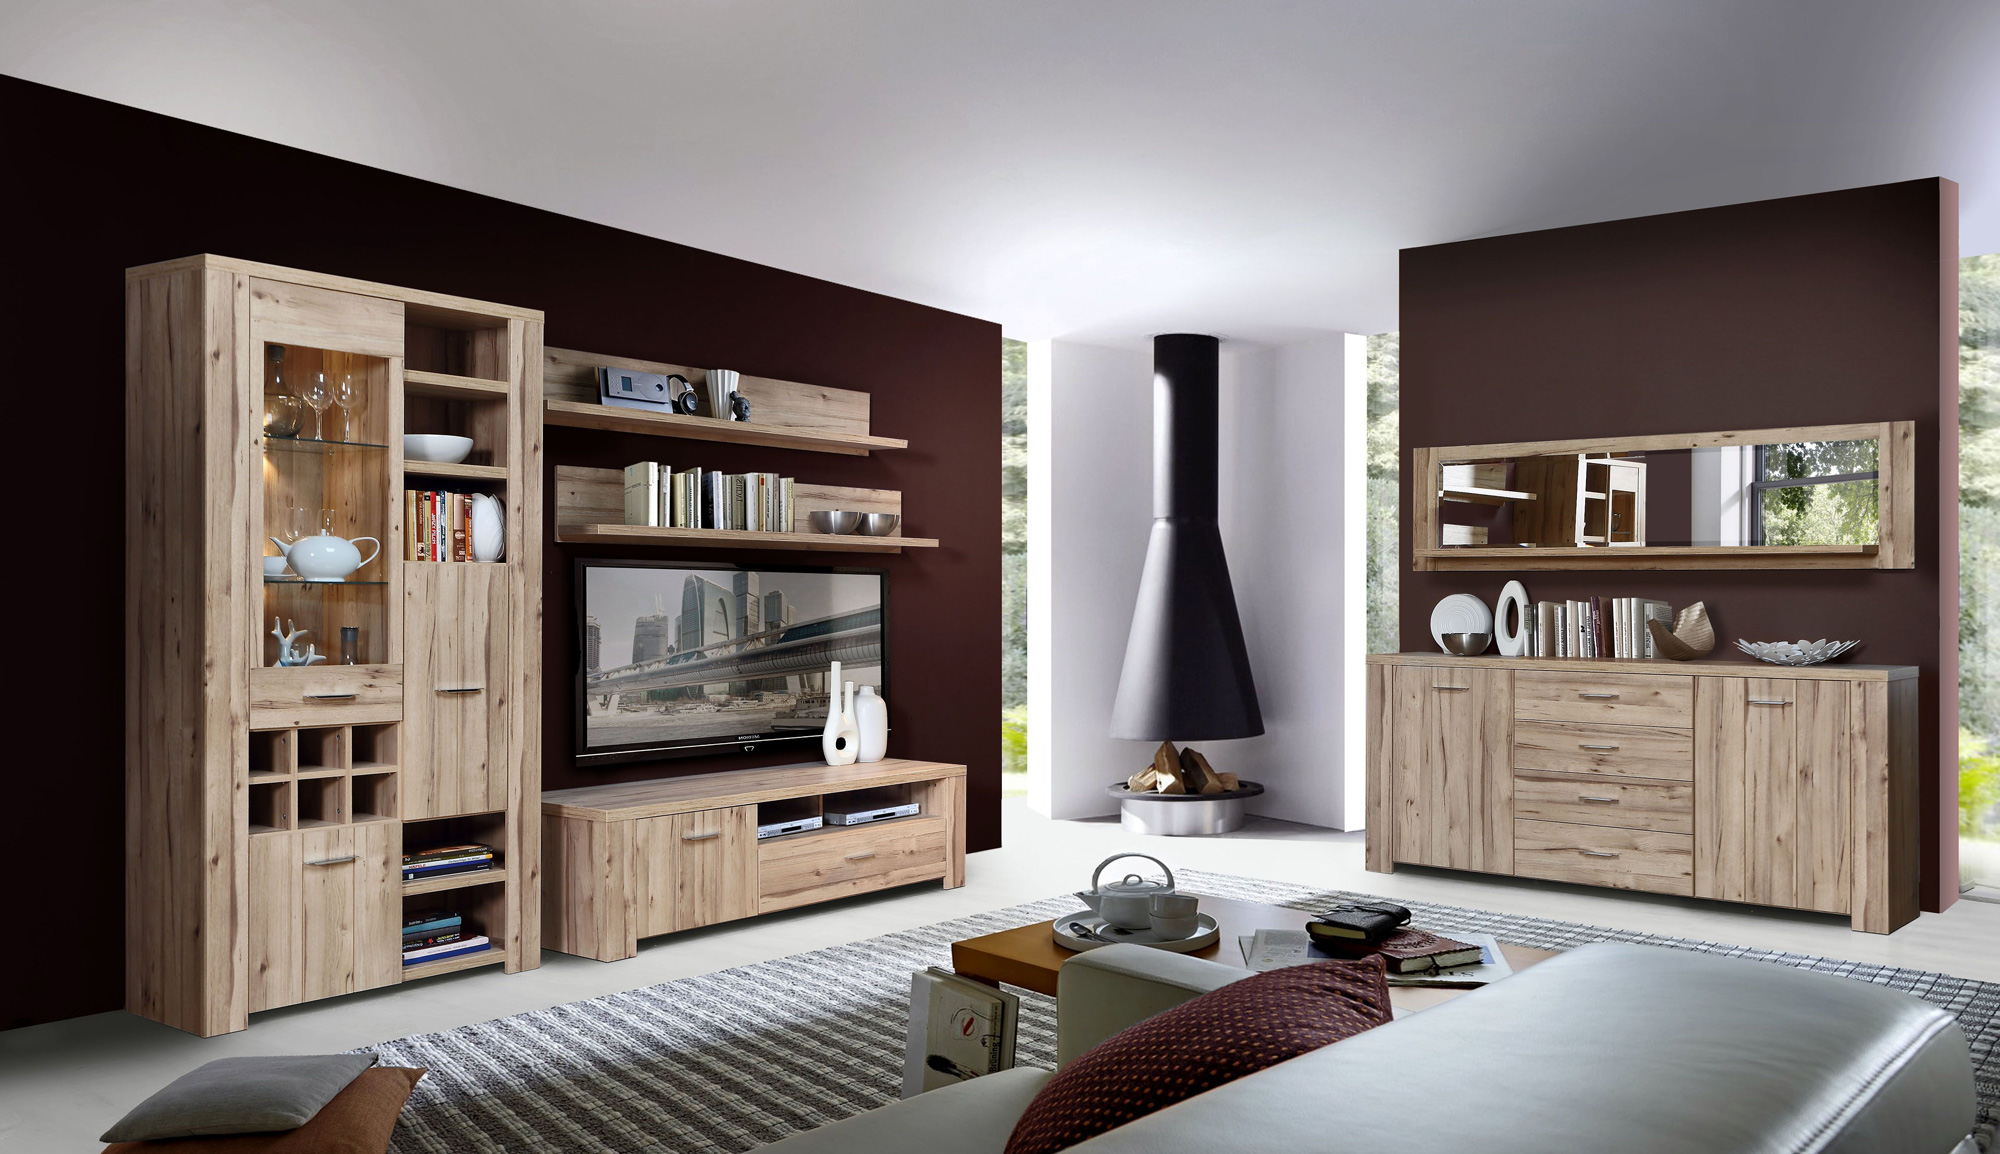 cuba wandregal mit spiegel planked eiche. Black Bedroom Furniture Sets. Home Design Ideas